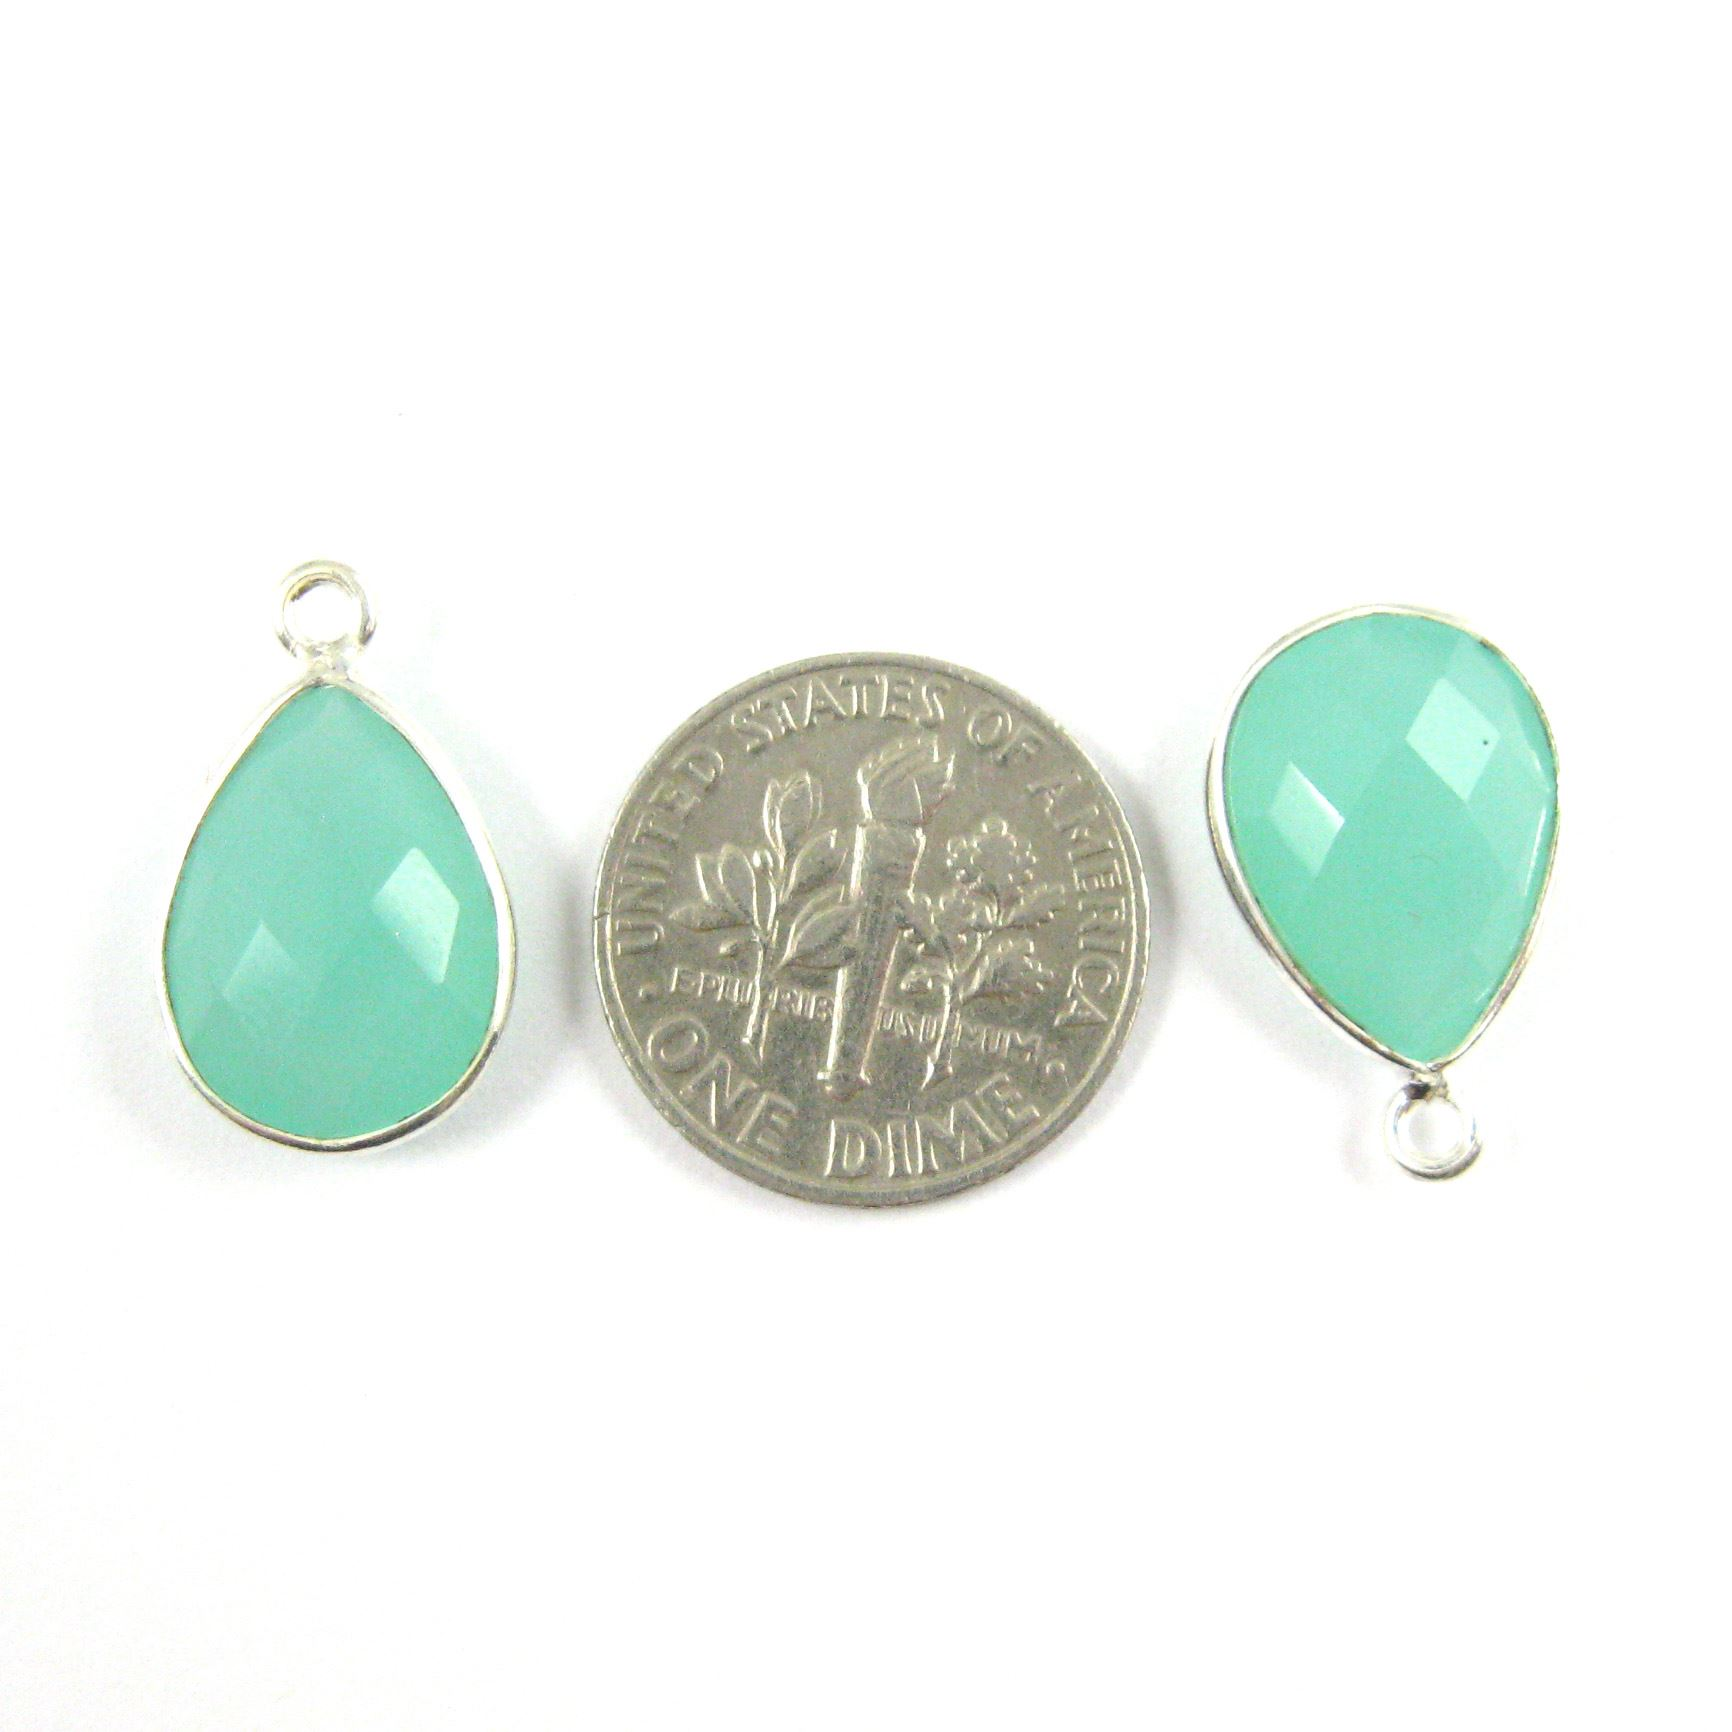 Bezel Gemstone Pendant -Sterling Silver Gem- 10x14mm Faceted Small Teardop Shape - Peru Chalcedony (sold per 2 pieces)